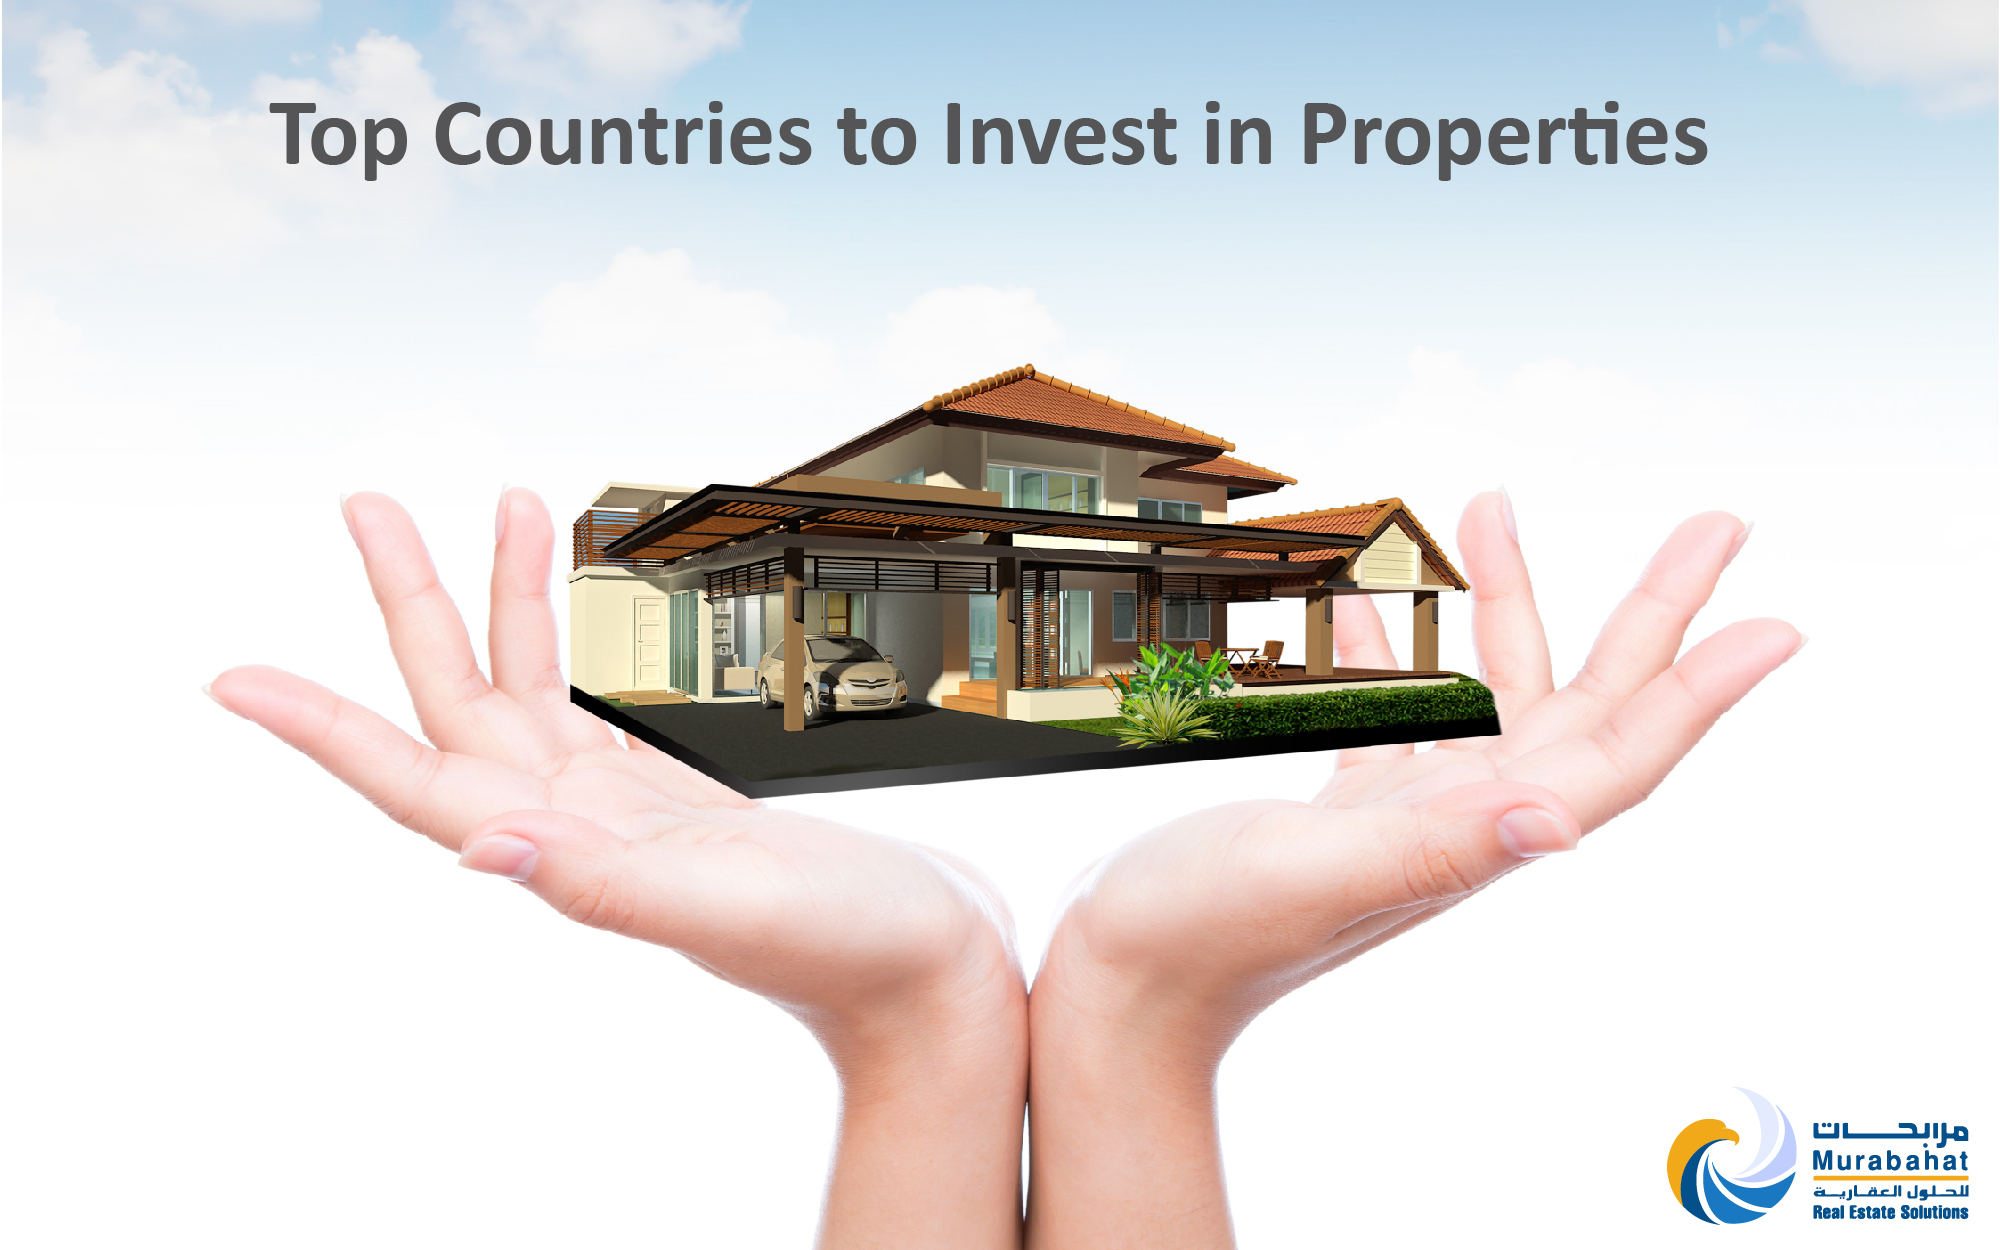 The Top 4 Countries to Invest in Properties